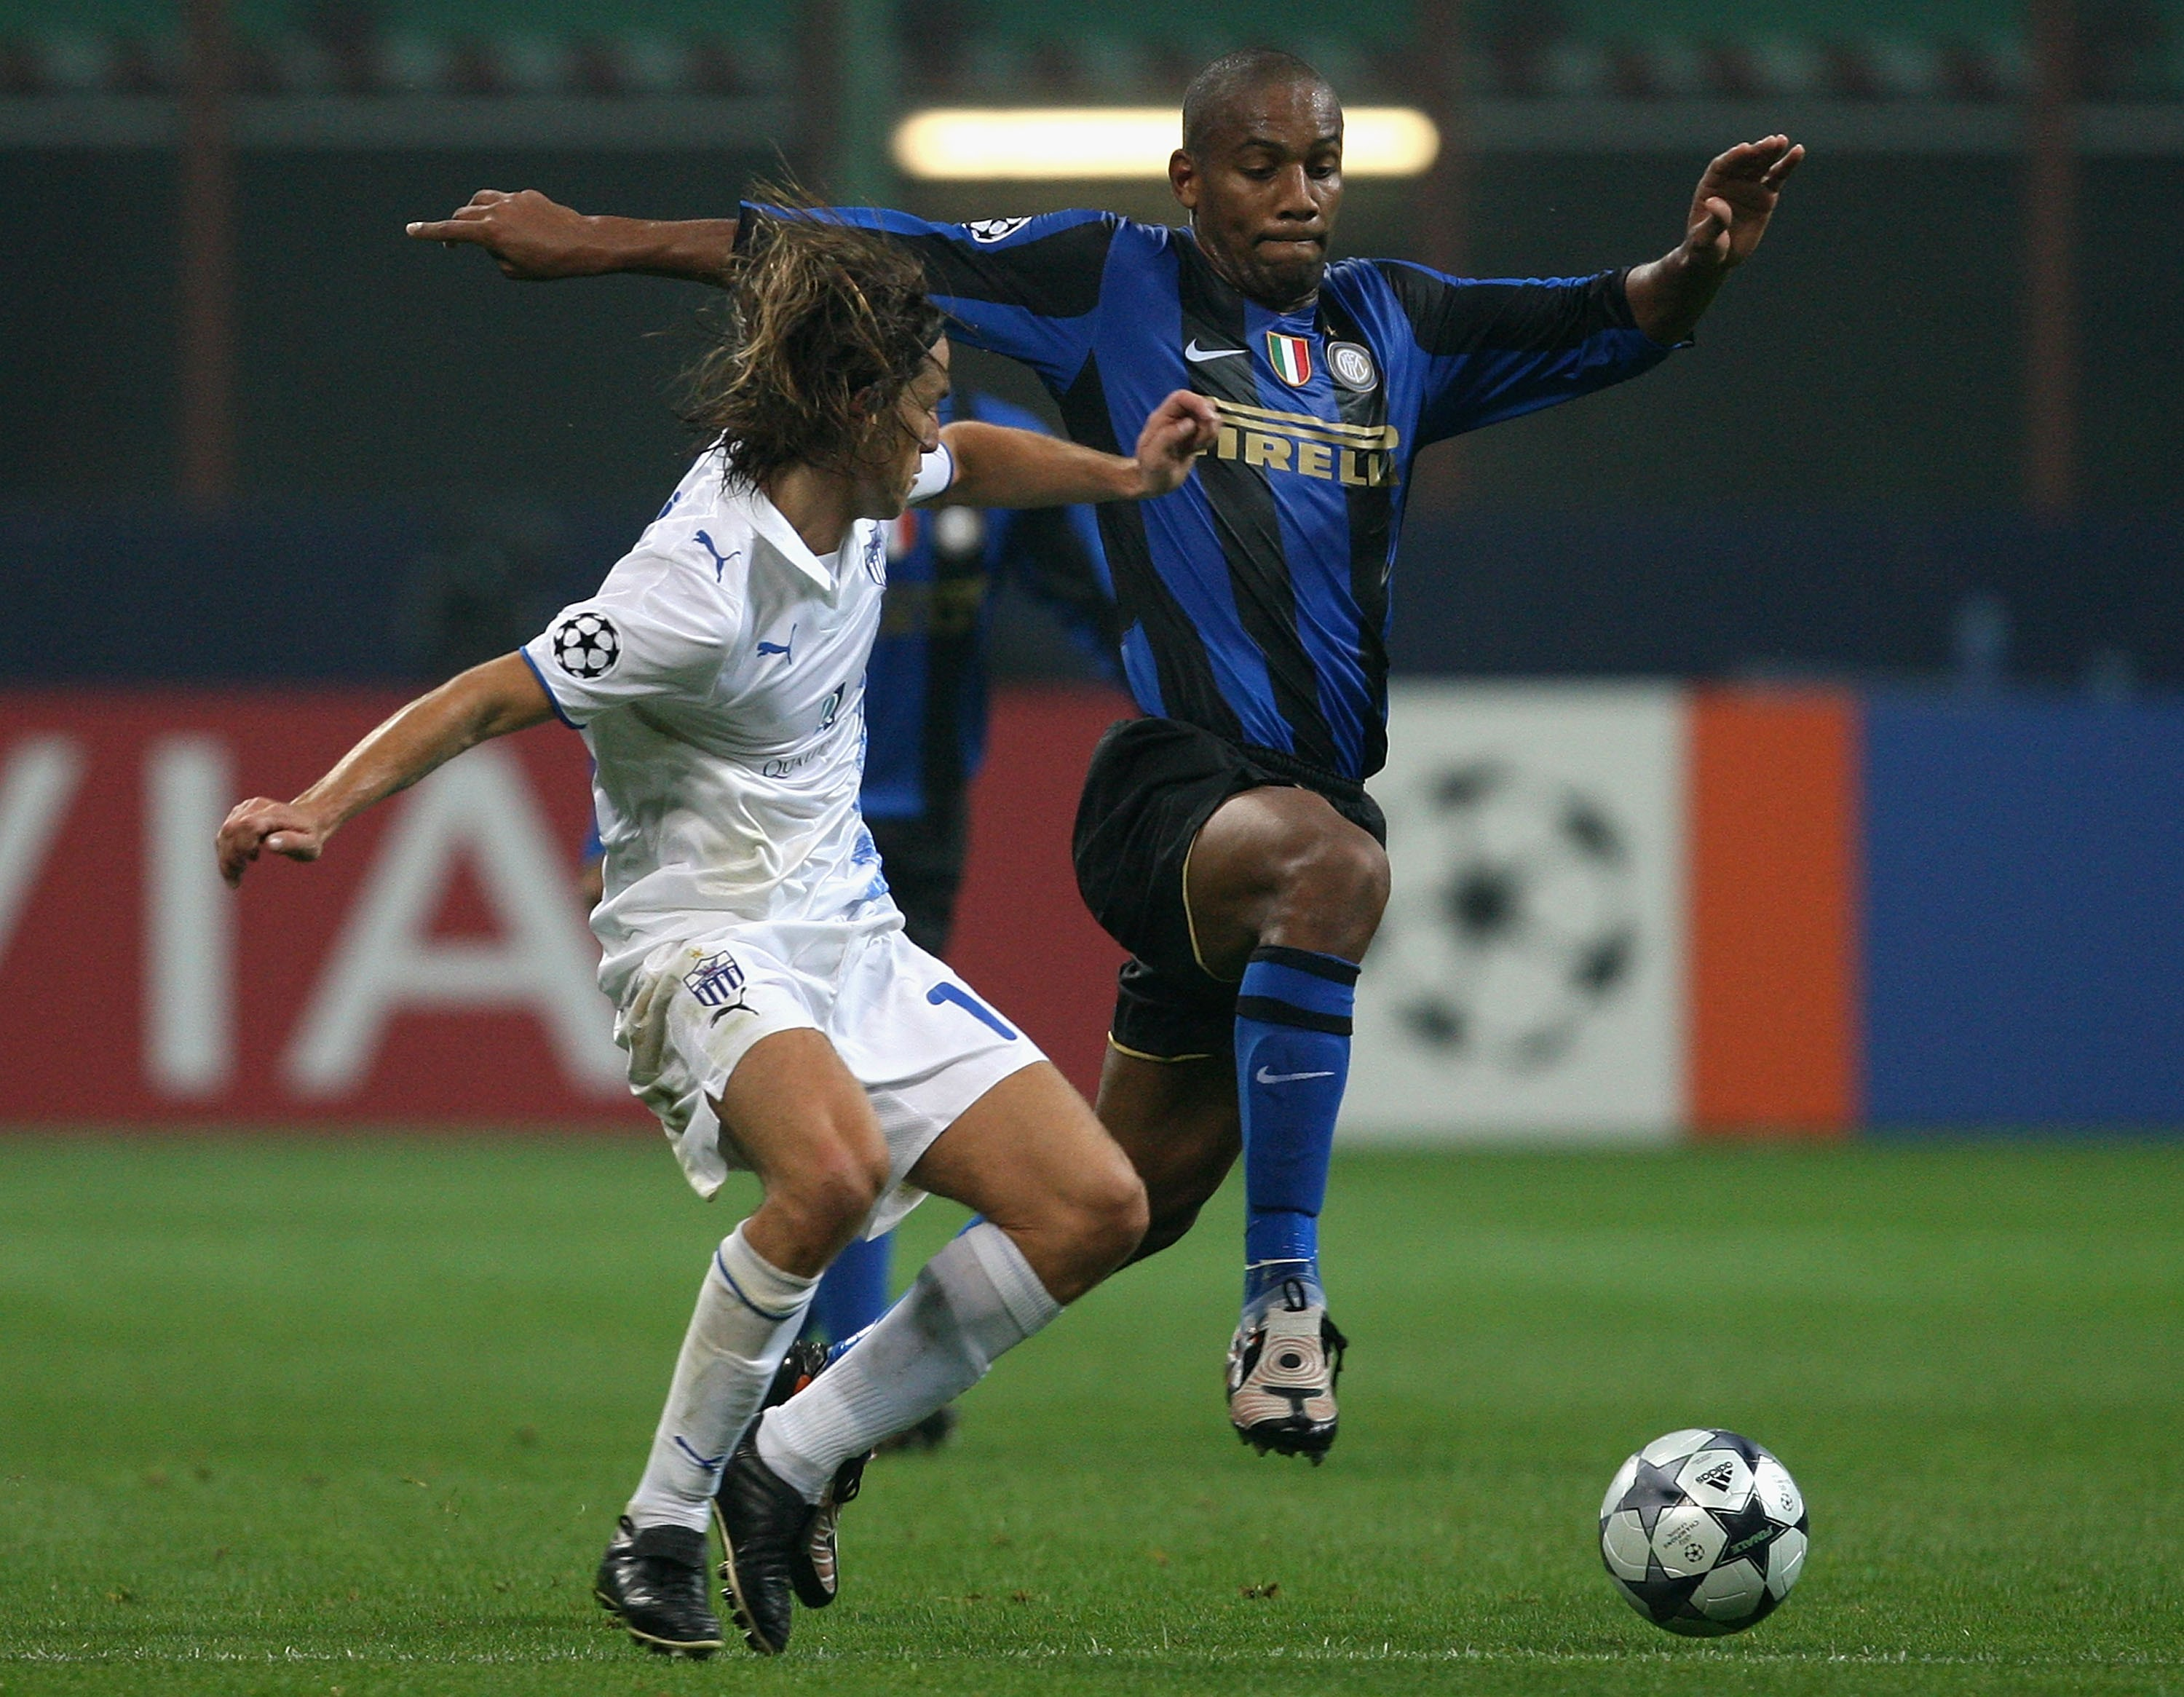 Inter-Milan-v-Anorthosis-Famagusta-UEFA-Champions-League-1542806438.jpg